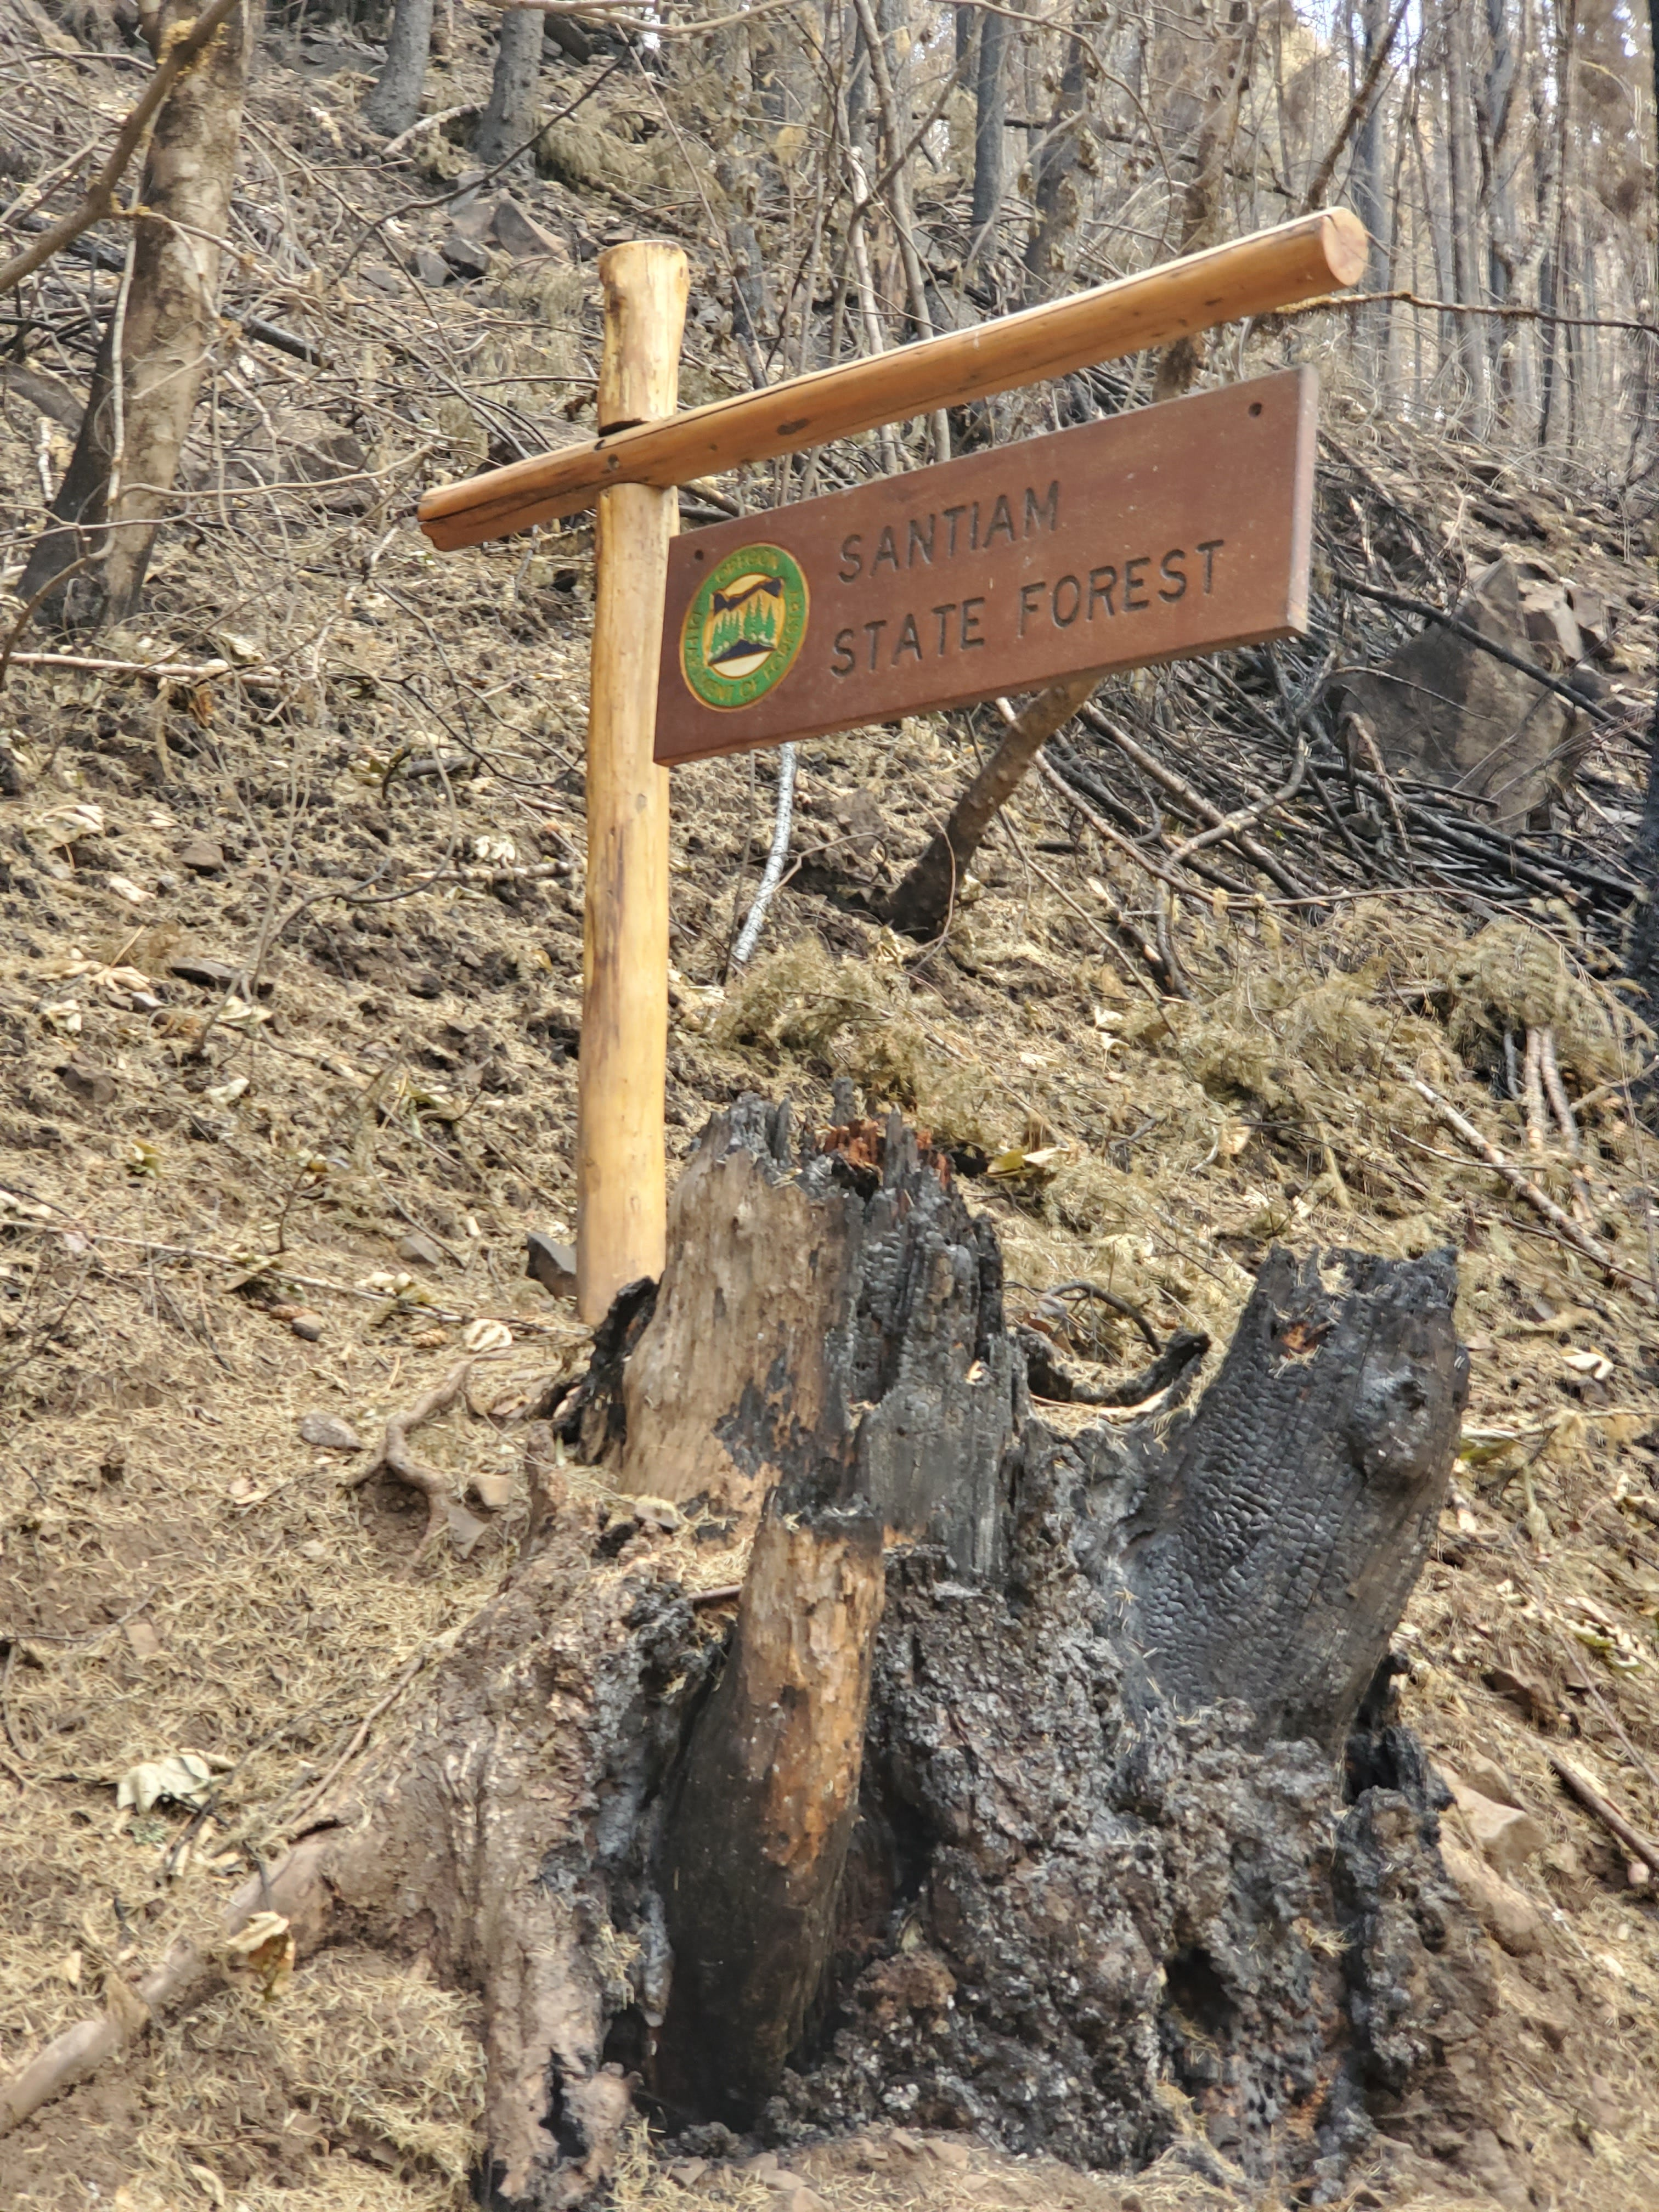 Three finalists for Oregon's next state forester will face wildfire, timber challenges